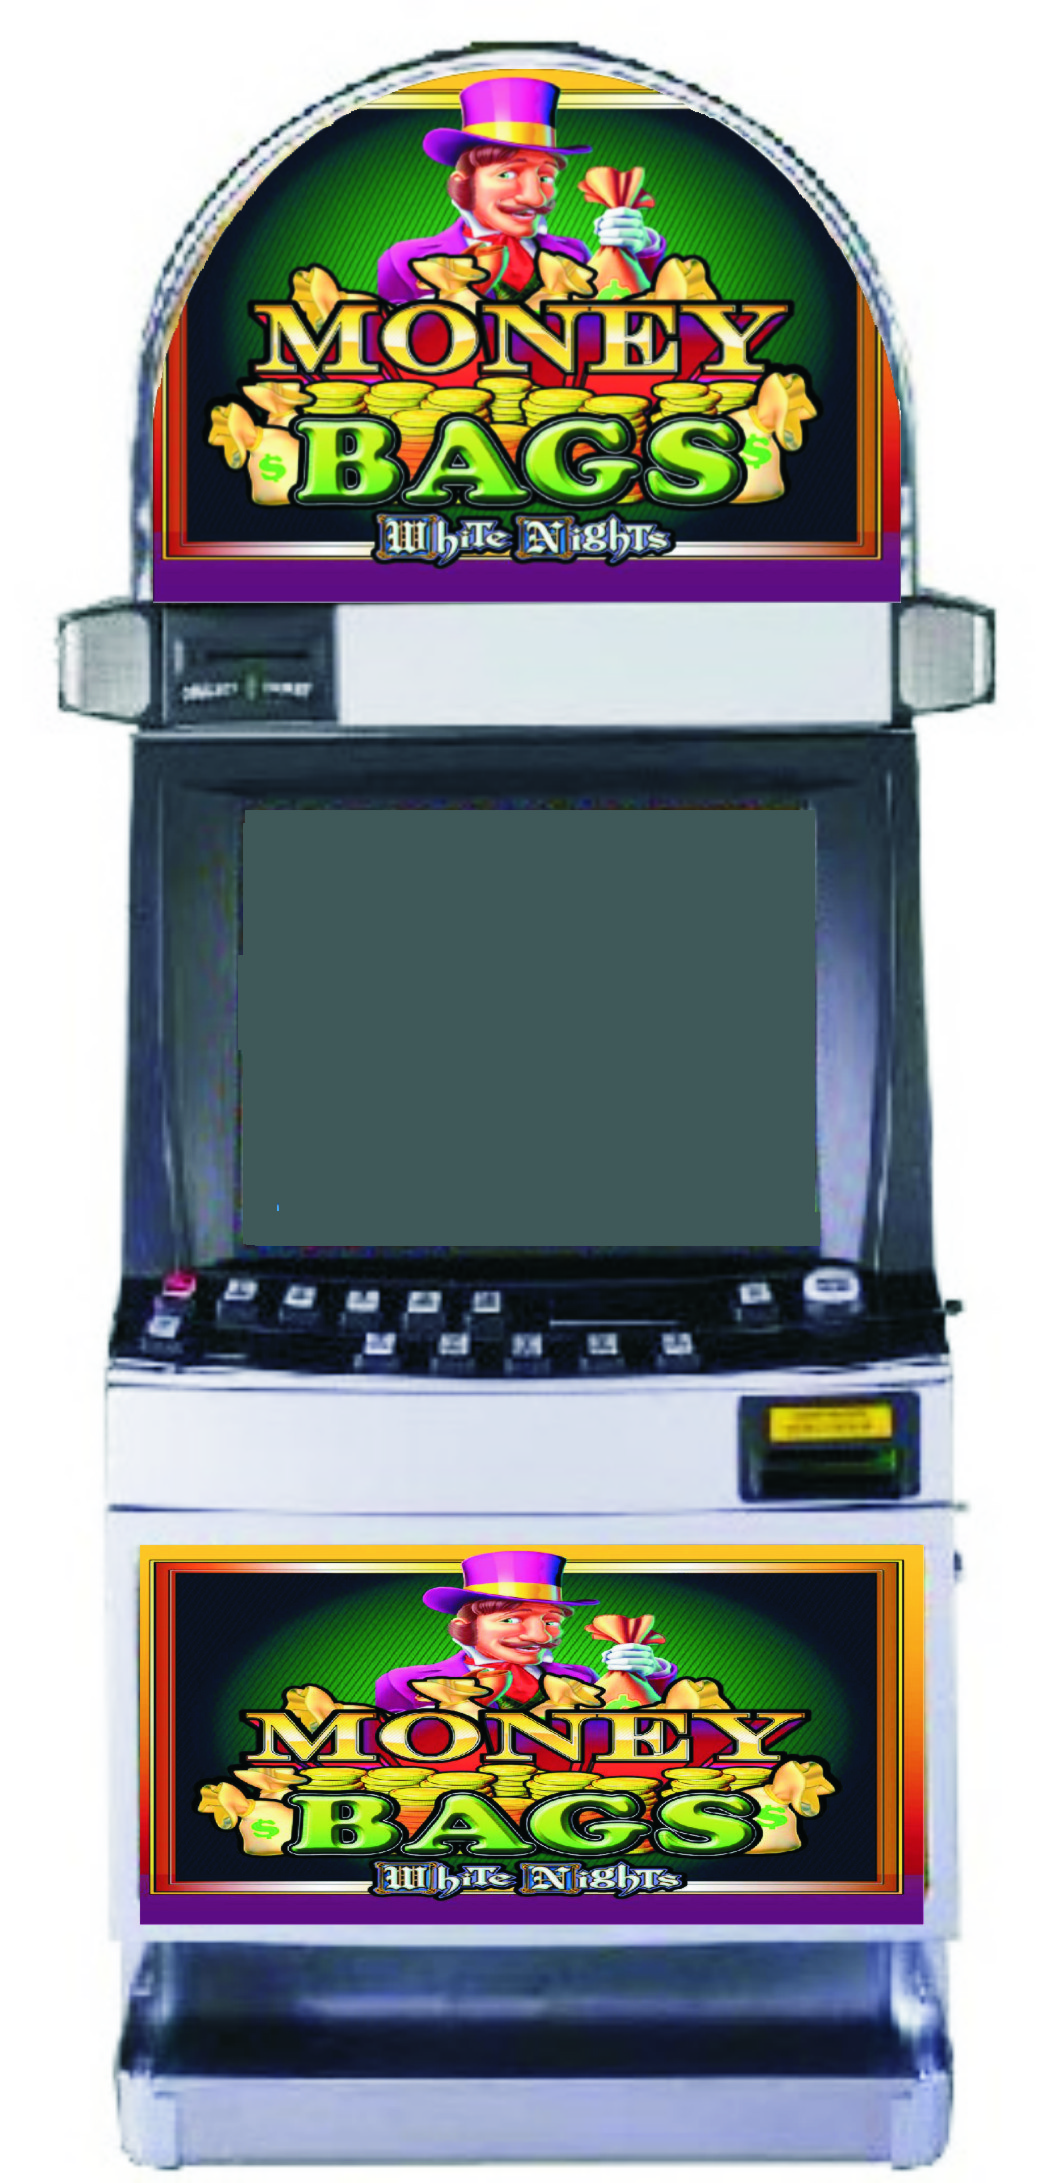 moneybags slot machines